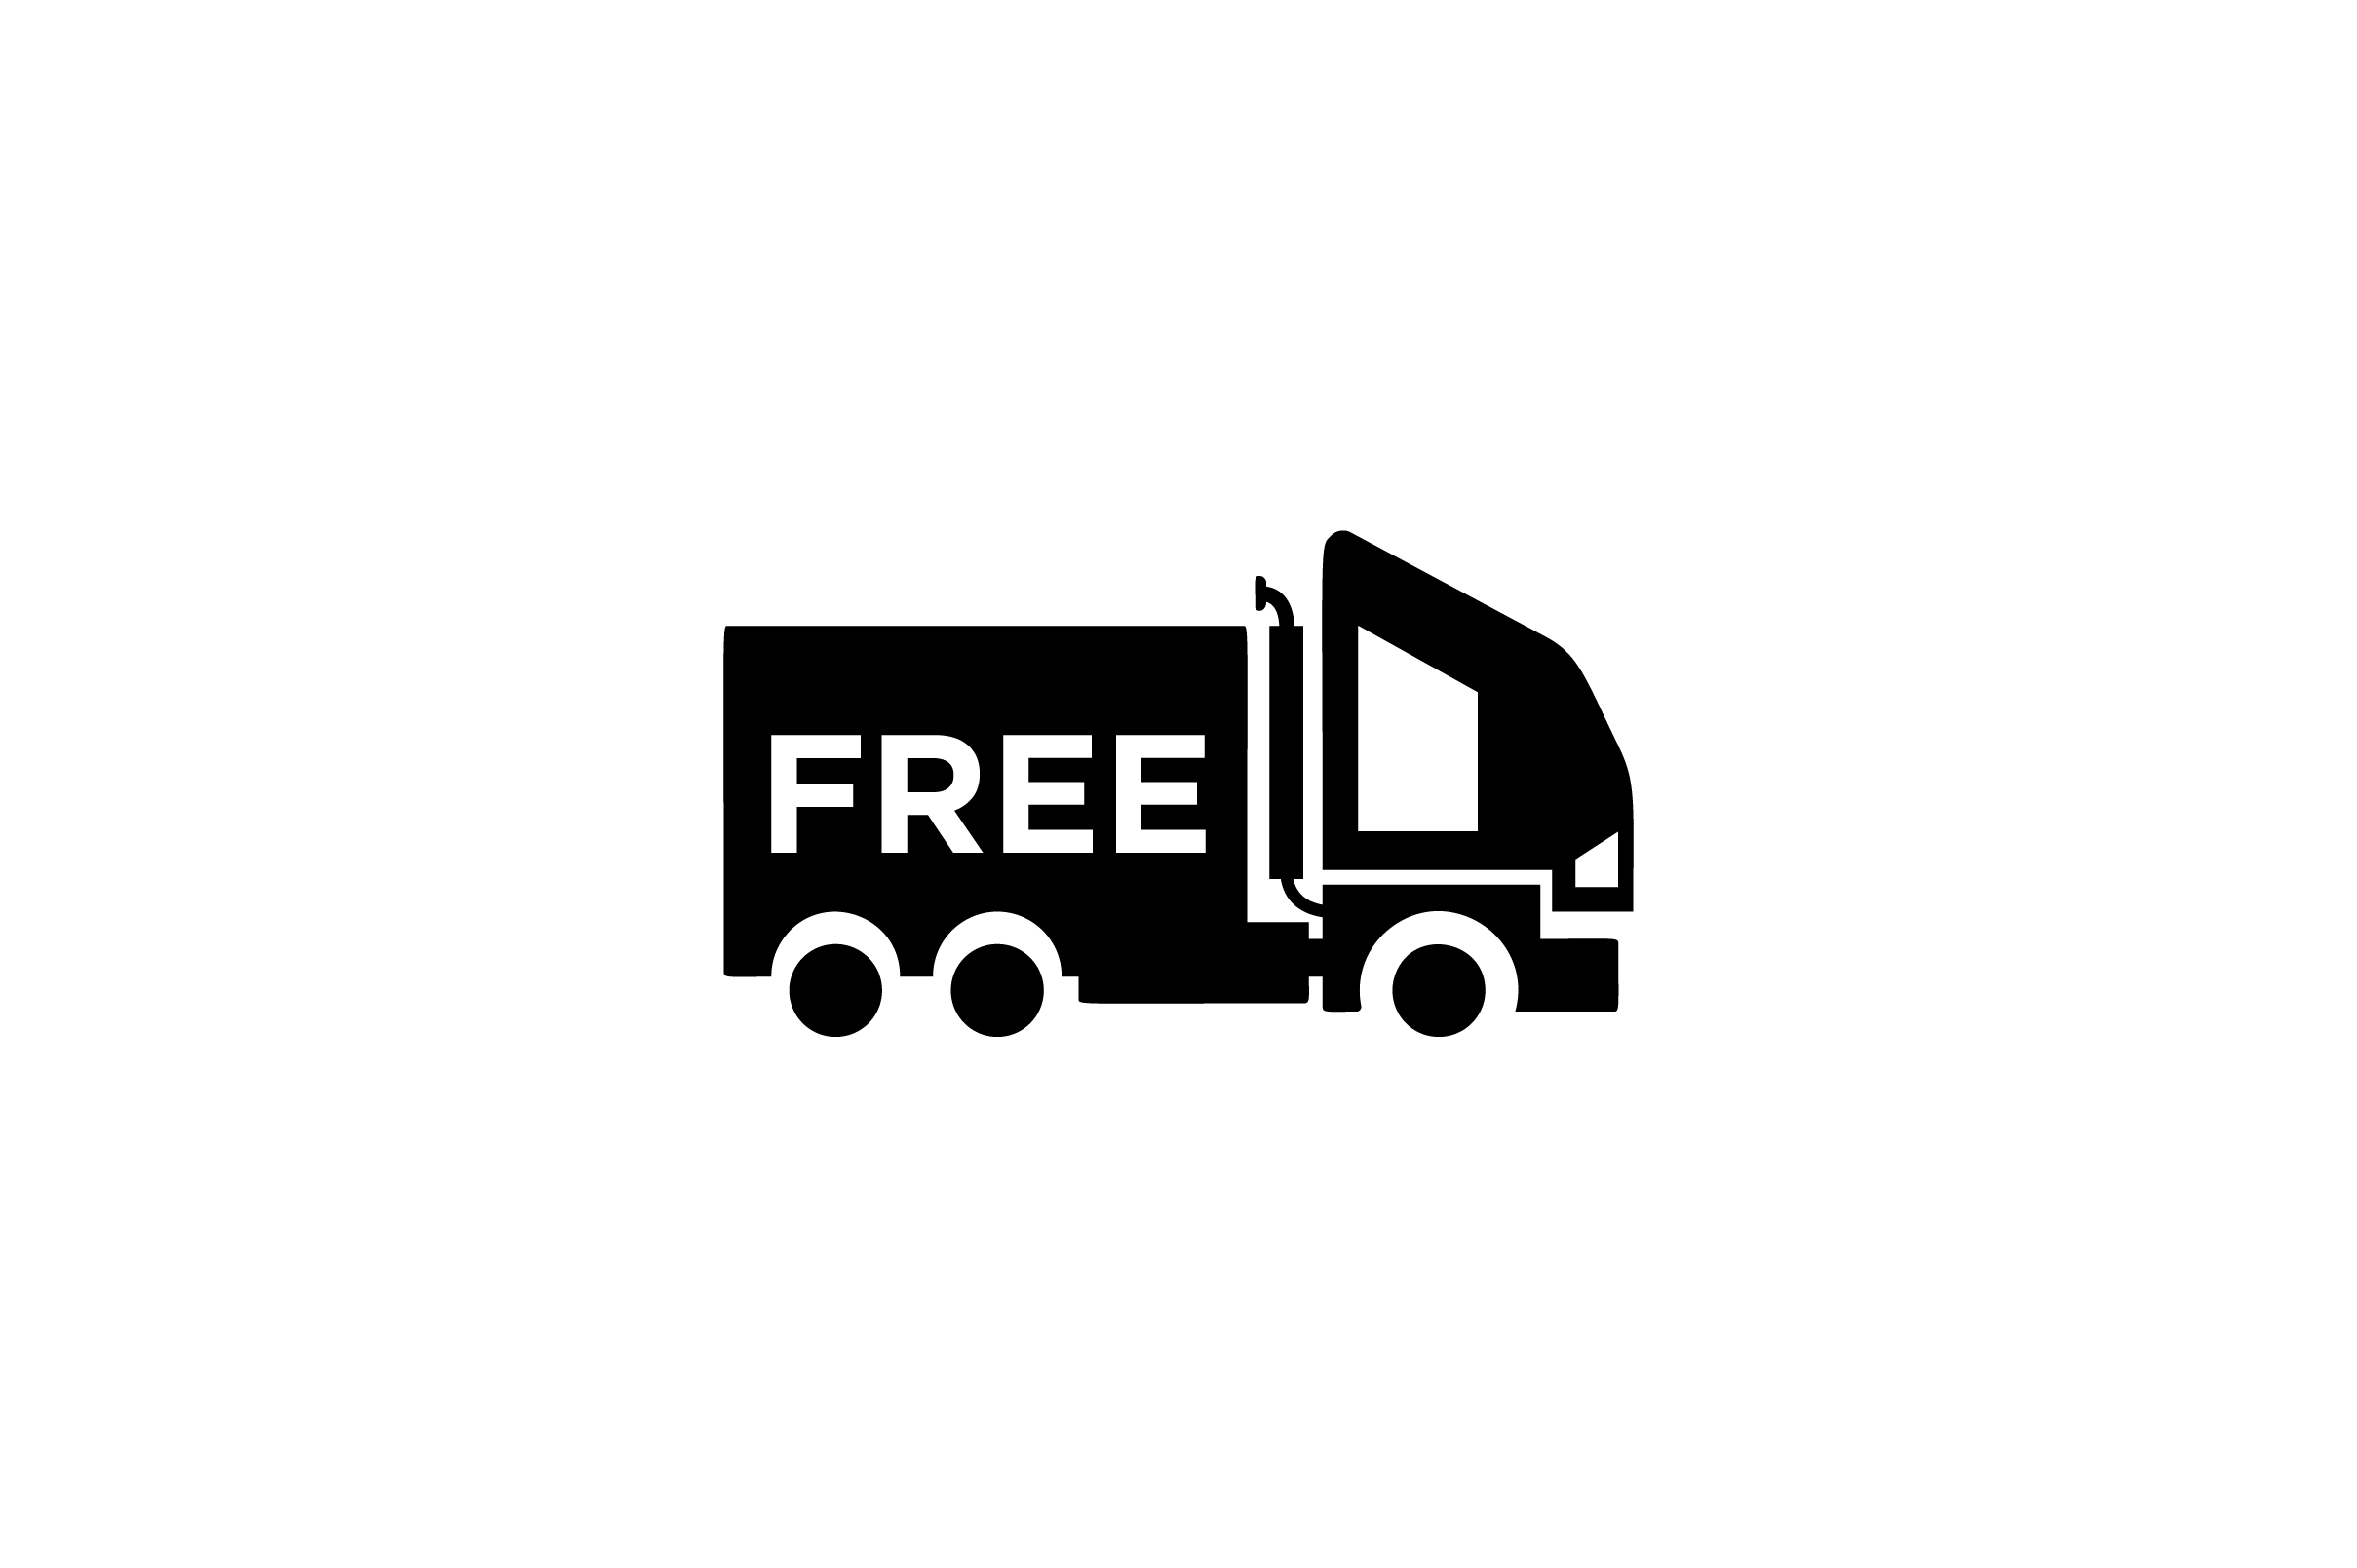 Download Free Free Delivery Truck Glyph Vector Icon Graphic By Riduwan Molla for Cricut Explore, Silhouette and other cutting machines.